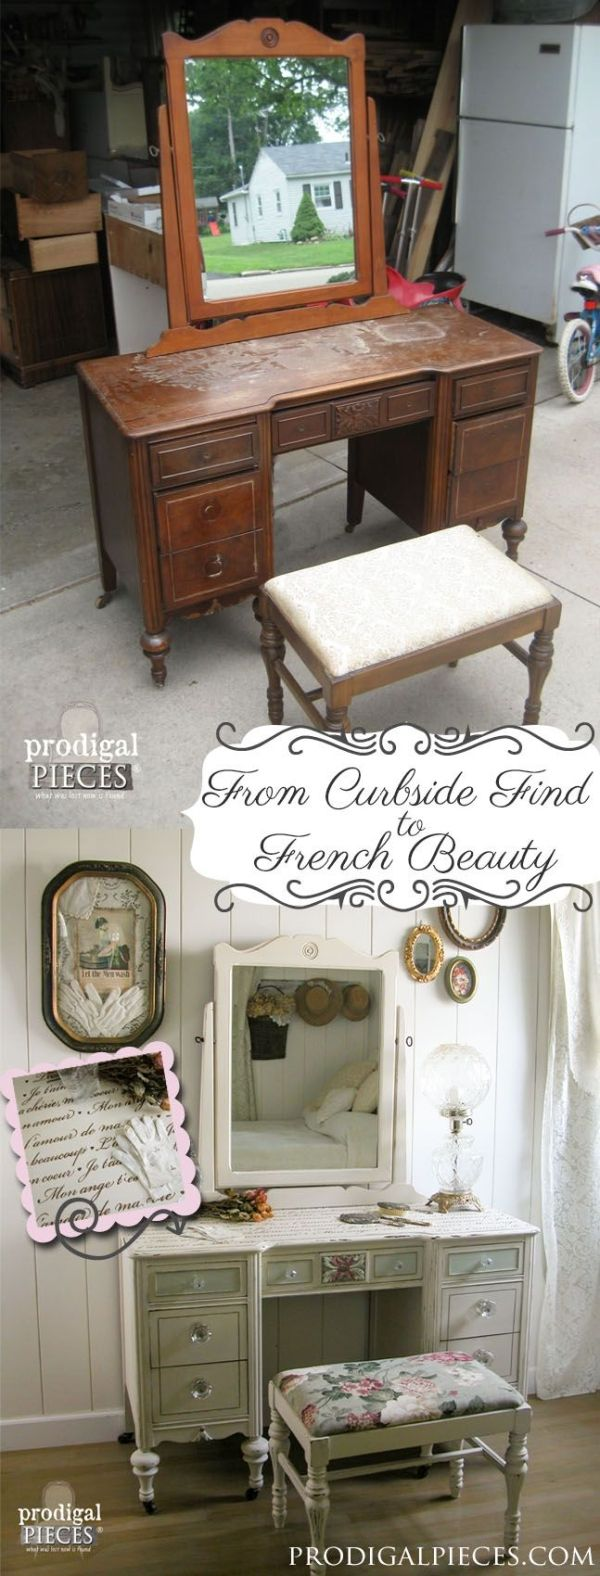 From curbside to French beauty - Shabby Chic Furniture using French quotes and lettering stencils - Royal Design Studio designer stencils for furniture makeover DIY projects by deborah